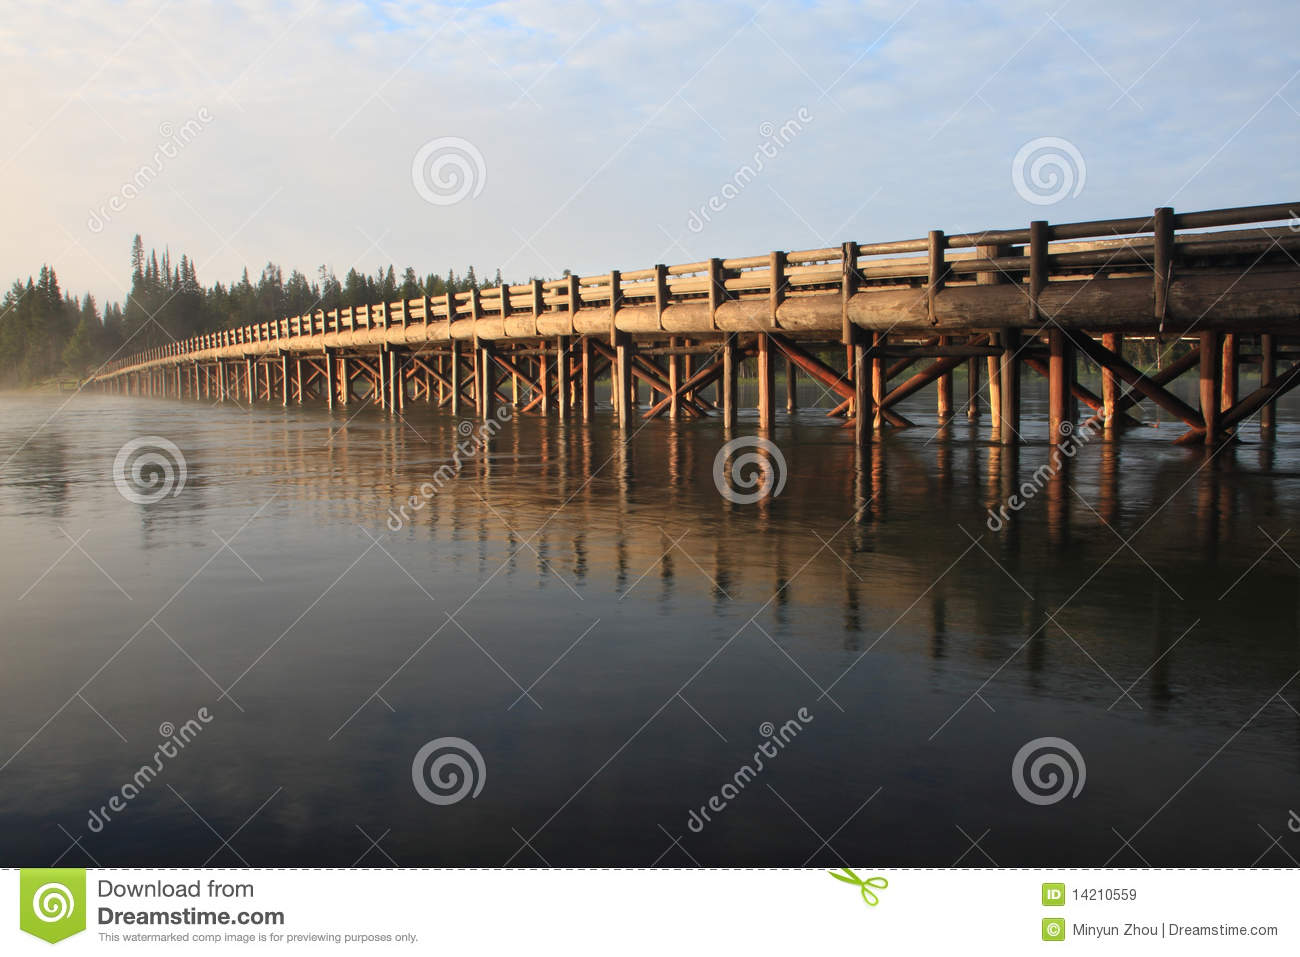 Fishing bridge yellowstone national park stock image for Yellowstone national park fishing